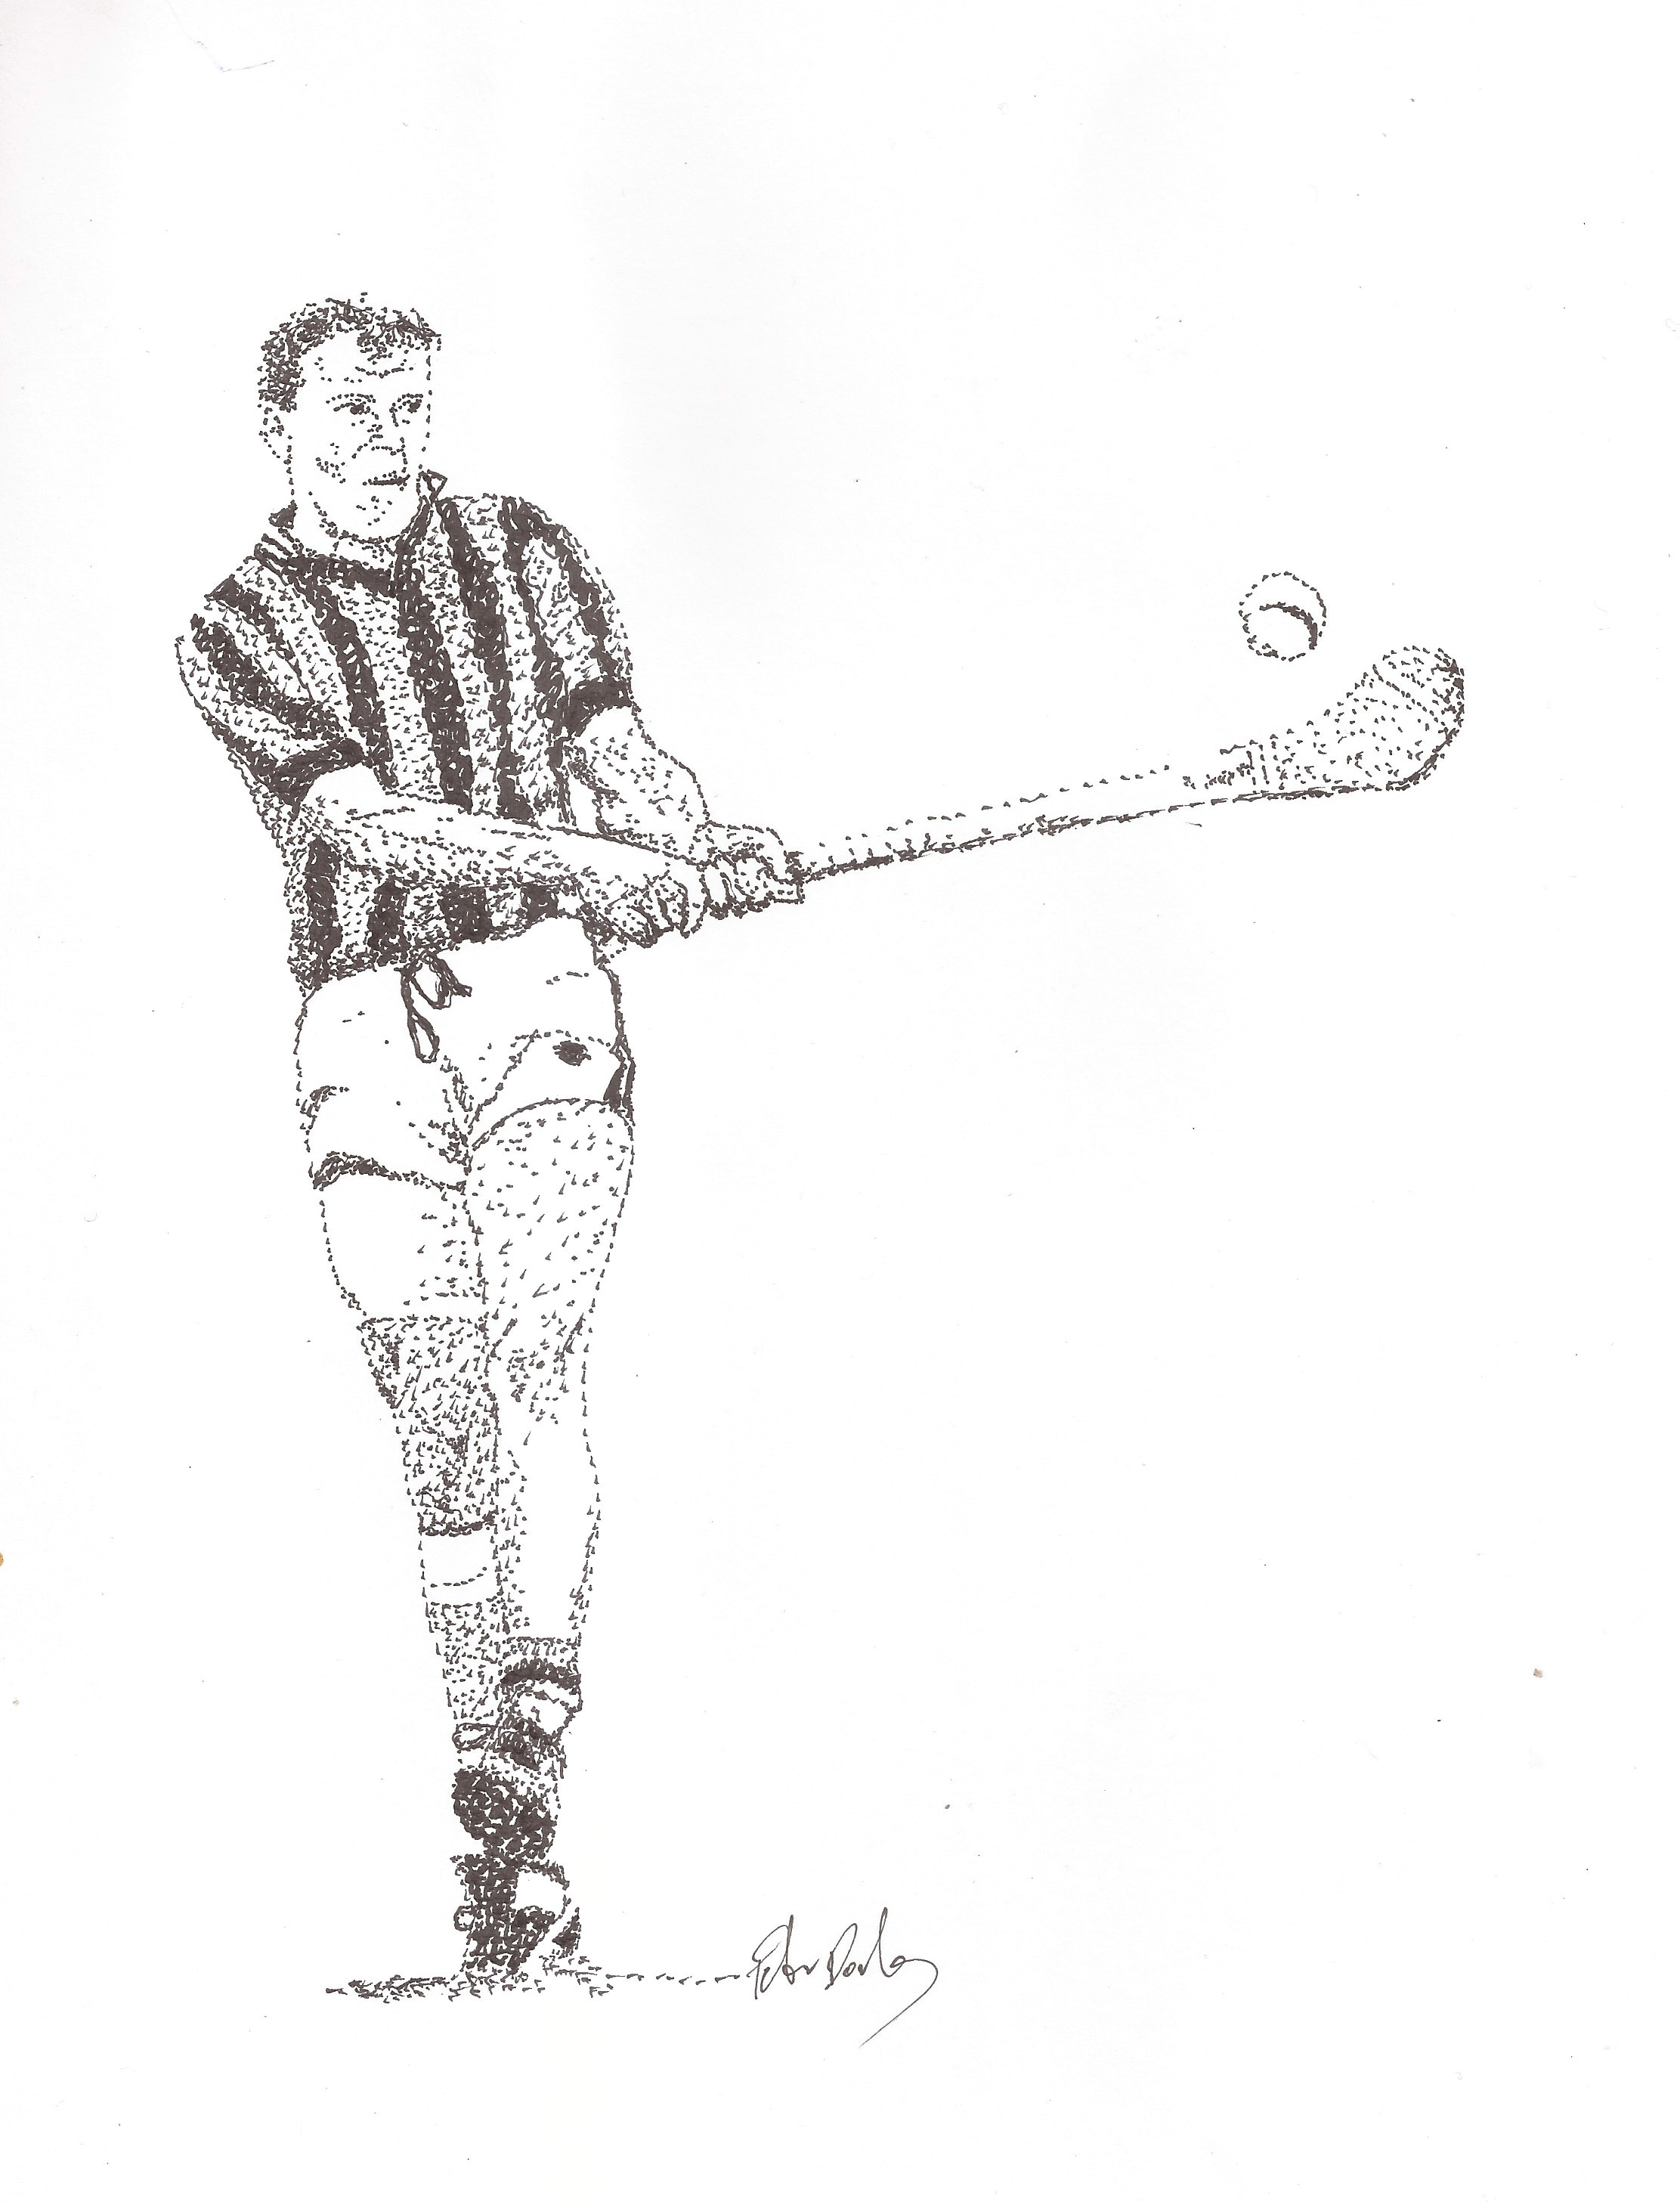 Fint Lalor was Captain of the first Camross team to win Laois Senior Hurling Championship in 1959.